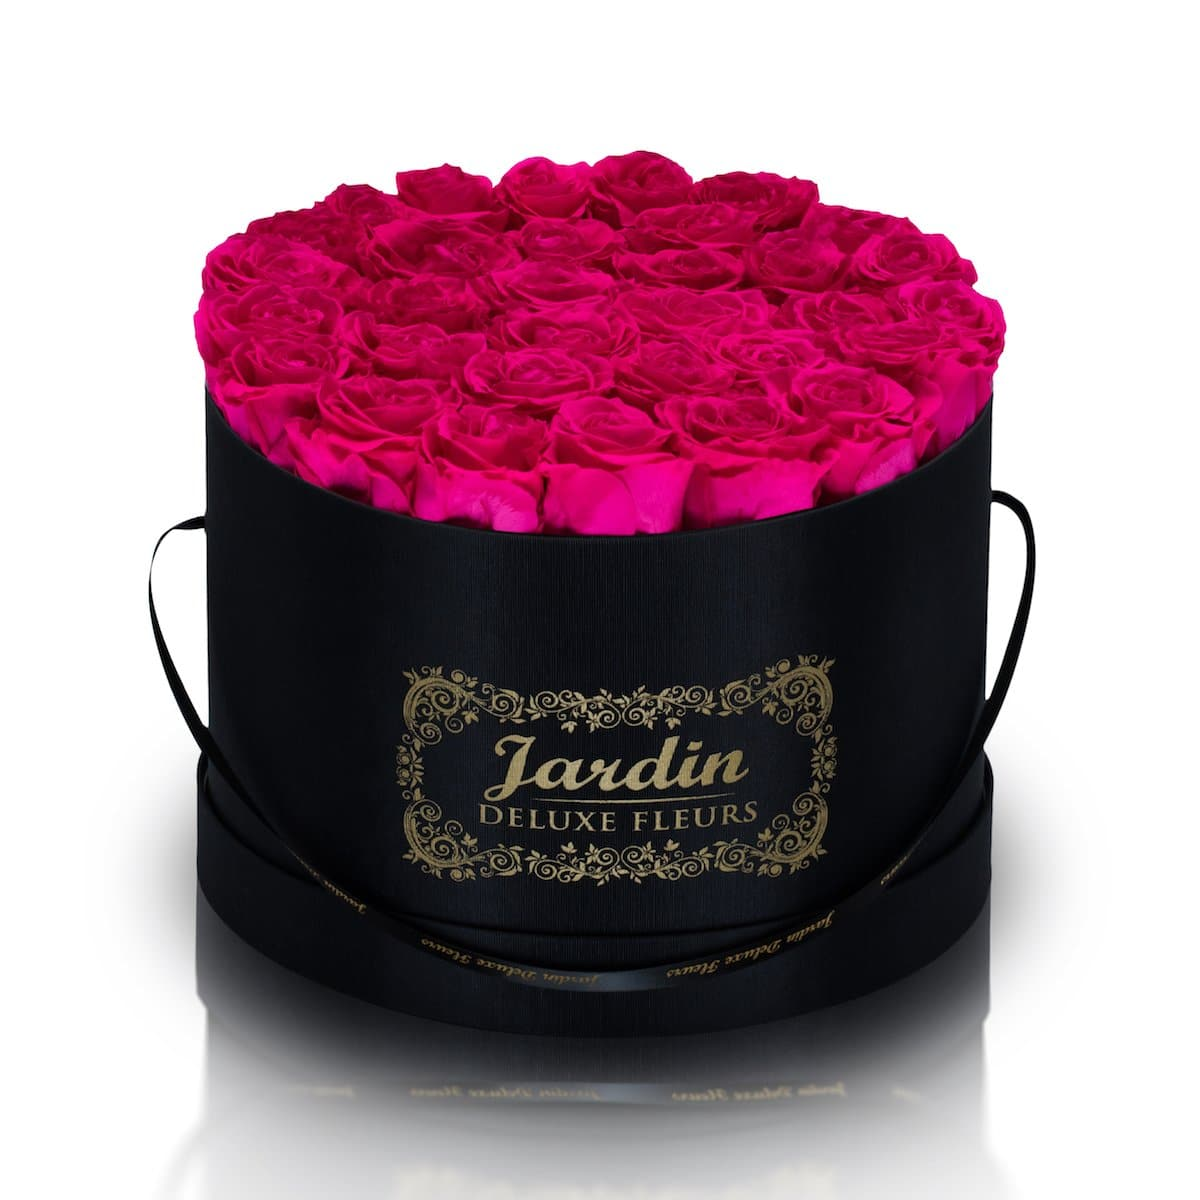 36 Pink Long Lasting Roses in Black Hatbox